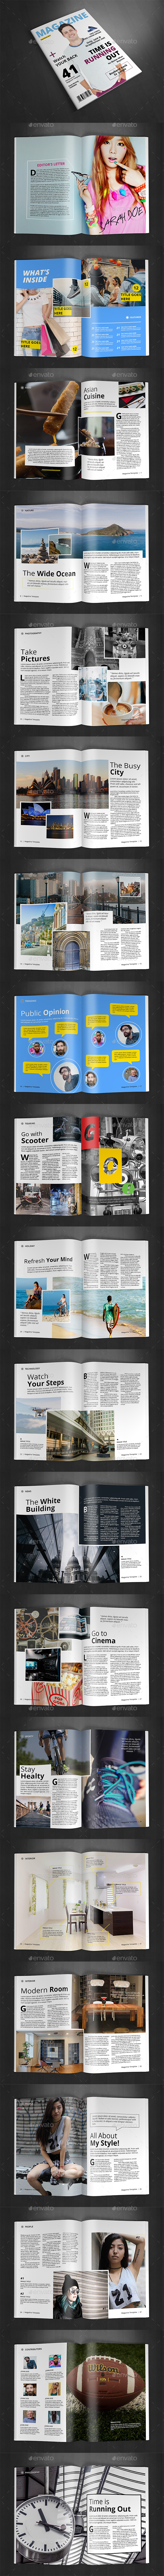 A4 Magazine Template Vol.25 - Magazines Print Templates